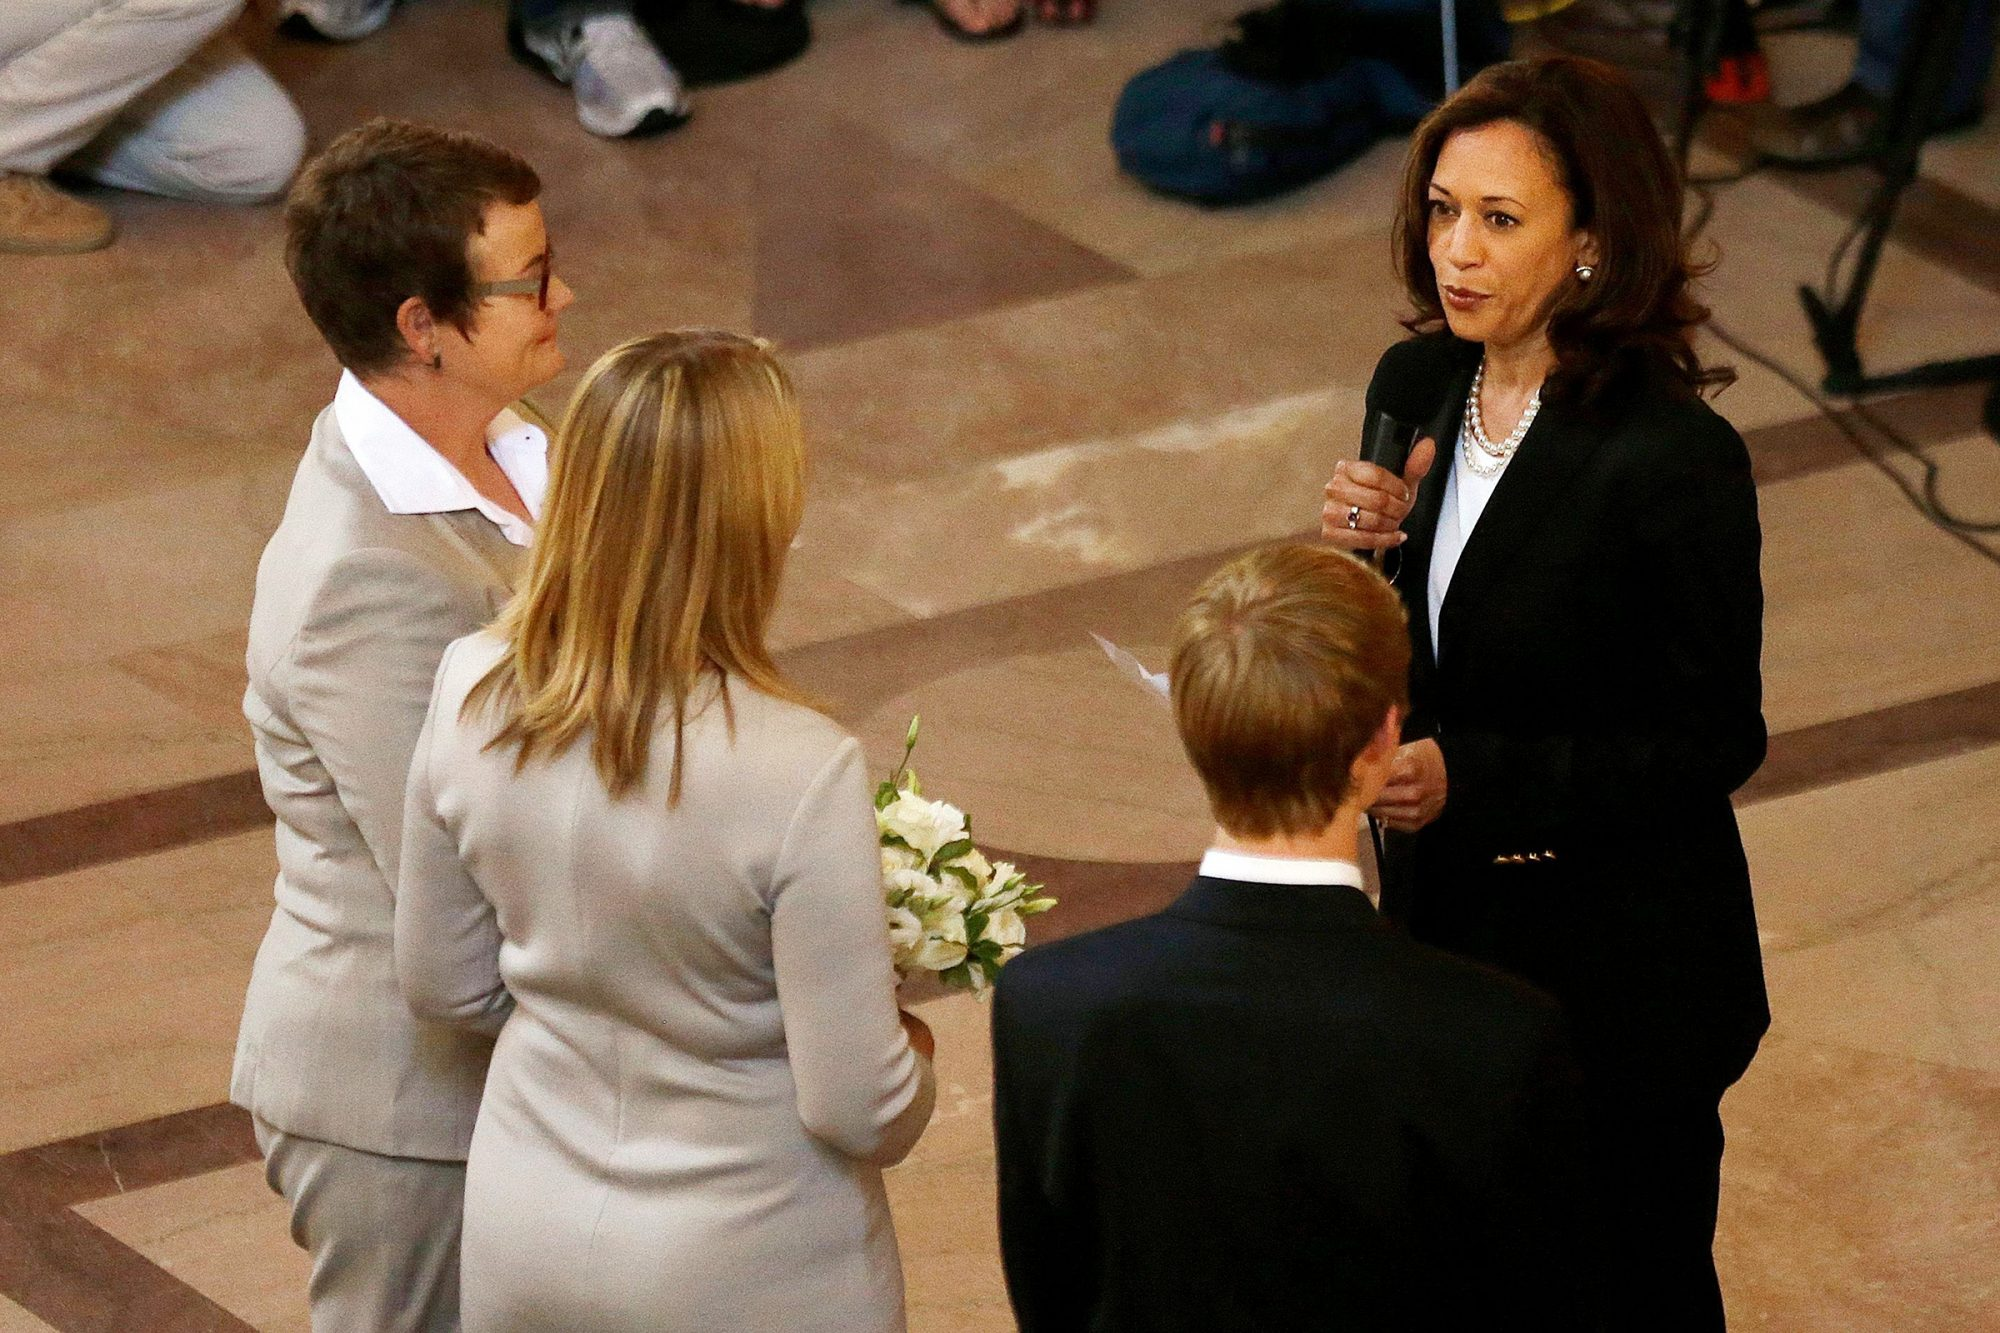 Attorney General Kamala Harris, right, officiates the wedding of Kris Perry, left, and Sandy Stier, second from left, in San Francisco, . Stier and Perry were married Friday, June 28, 2013